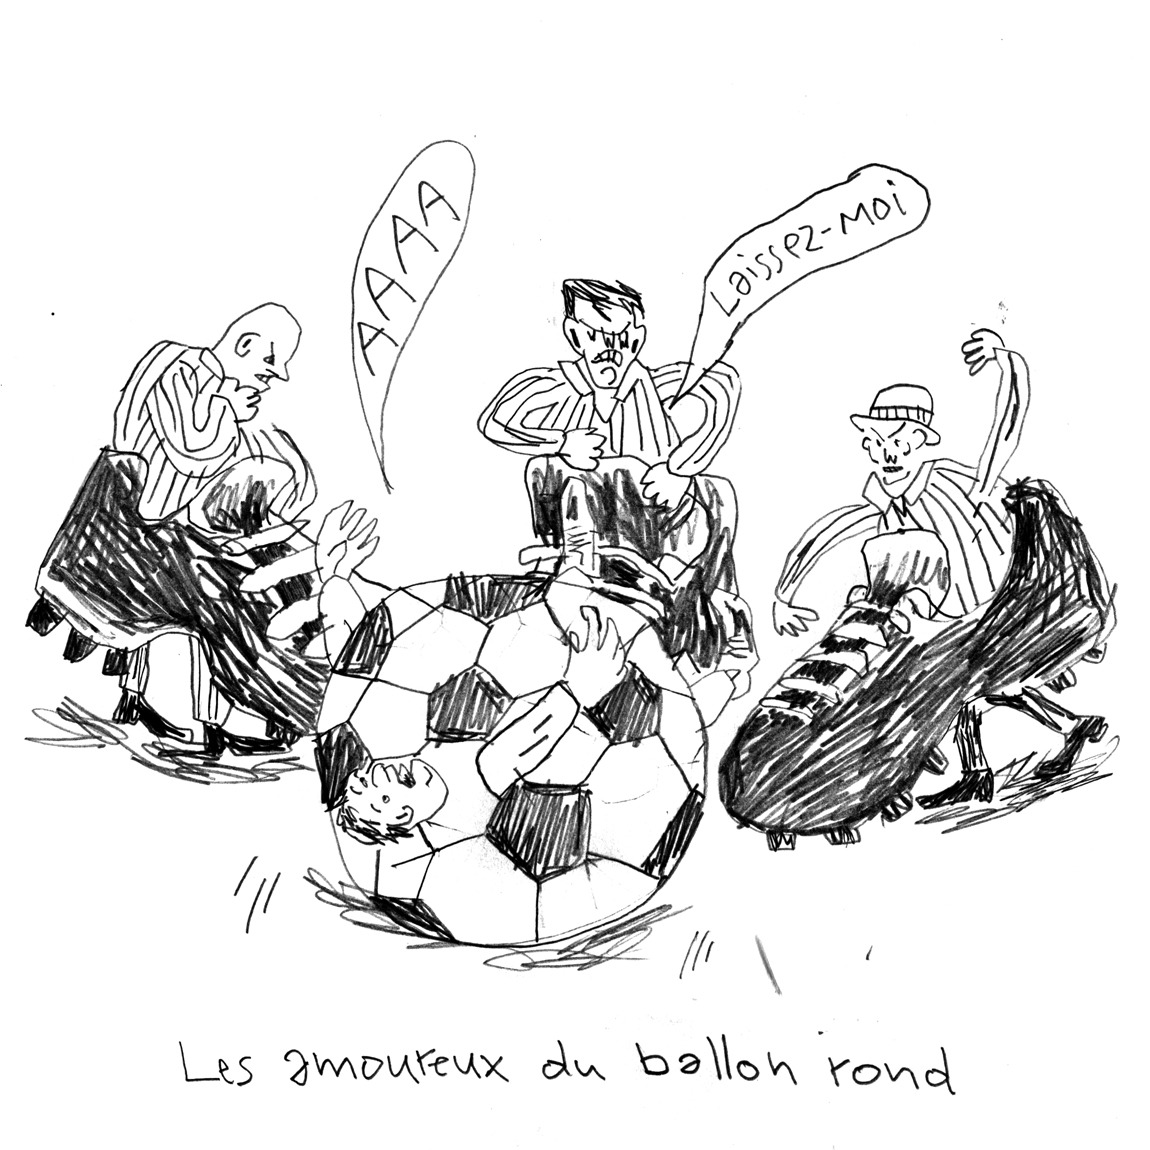 &laquo;Les amoureux du ballon rond [The soccer-lovers]&raquo;, 2015, mine de plomb  